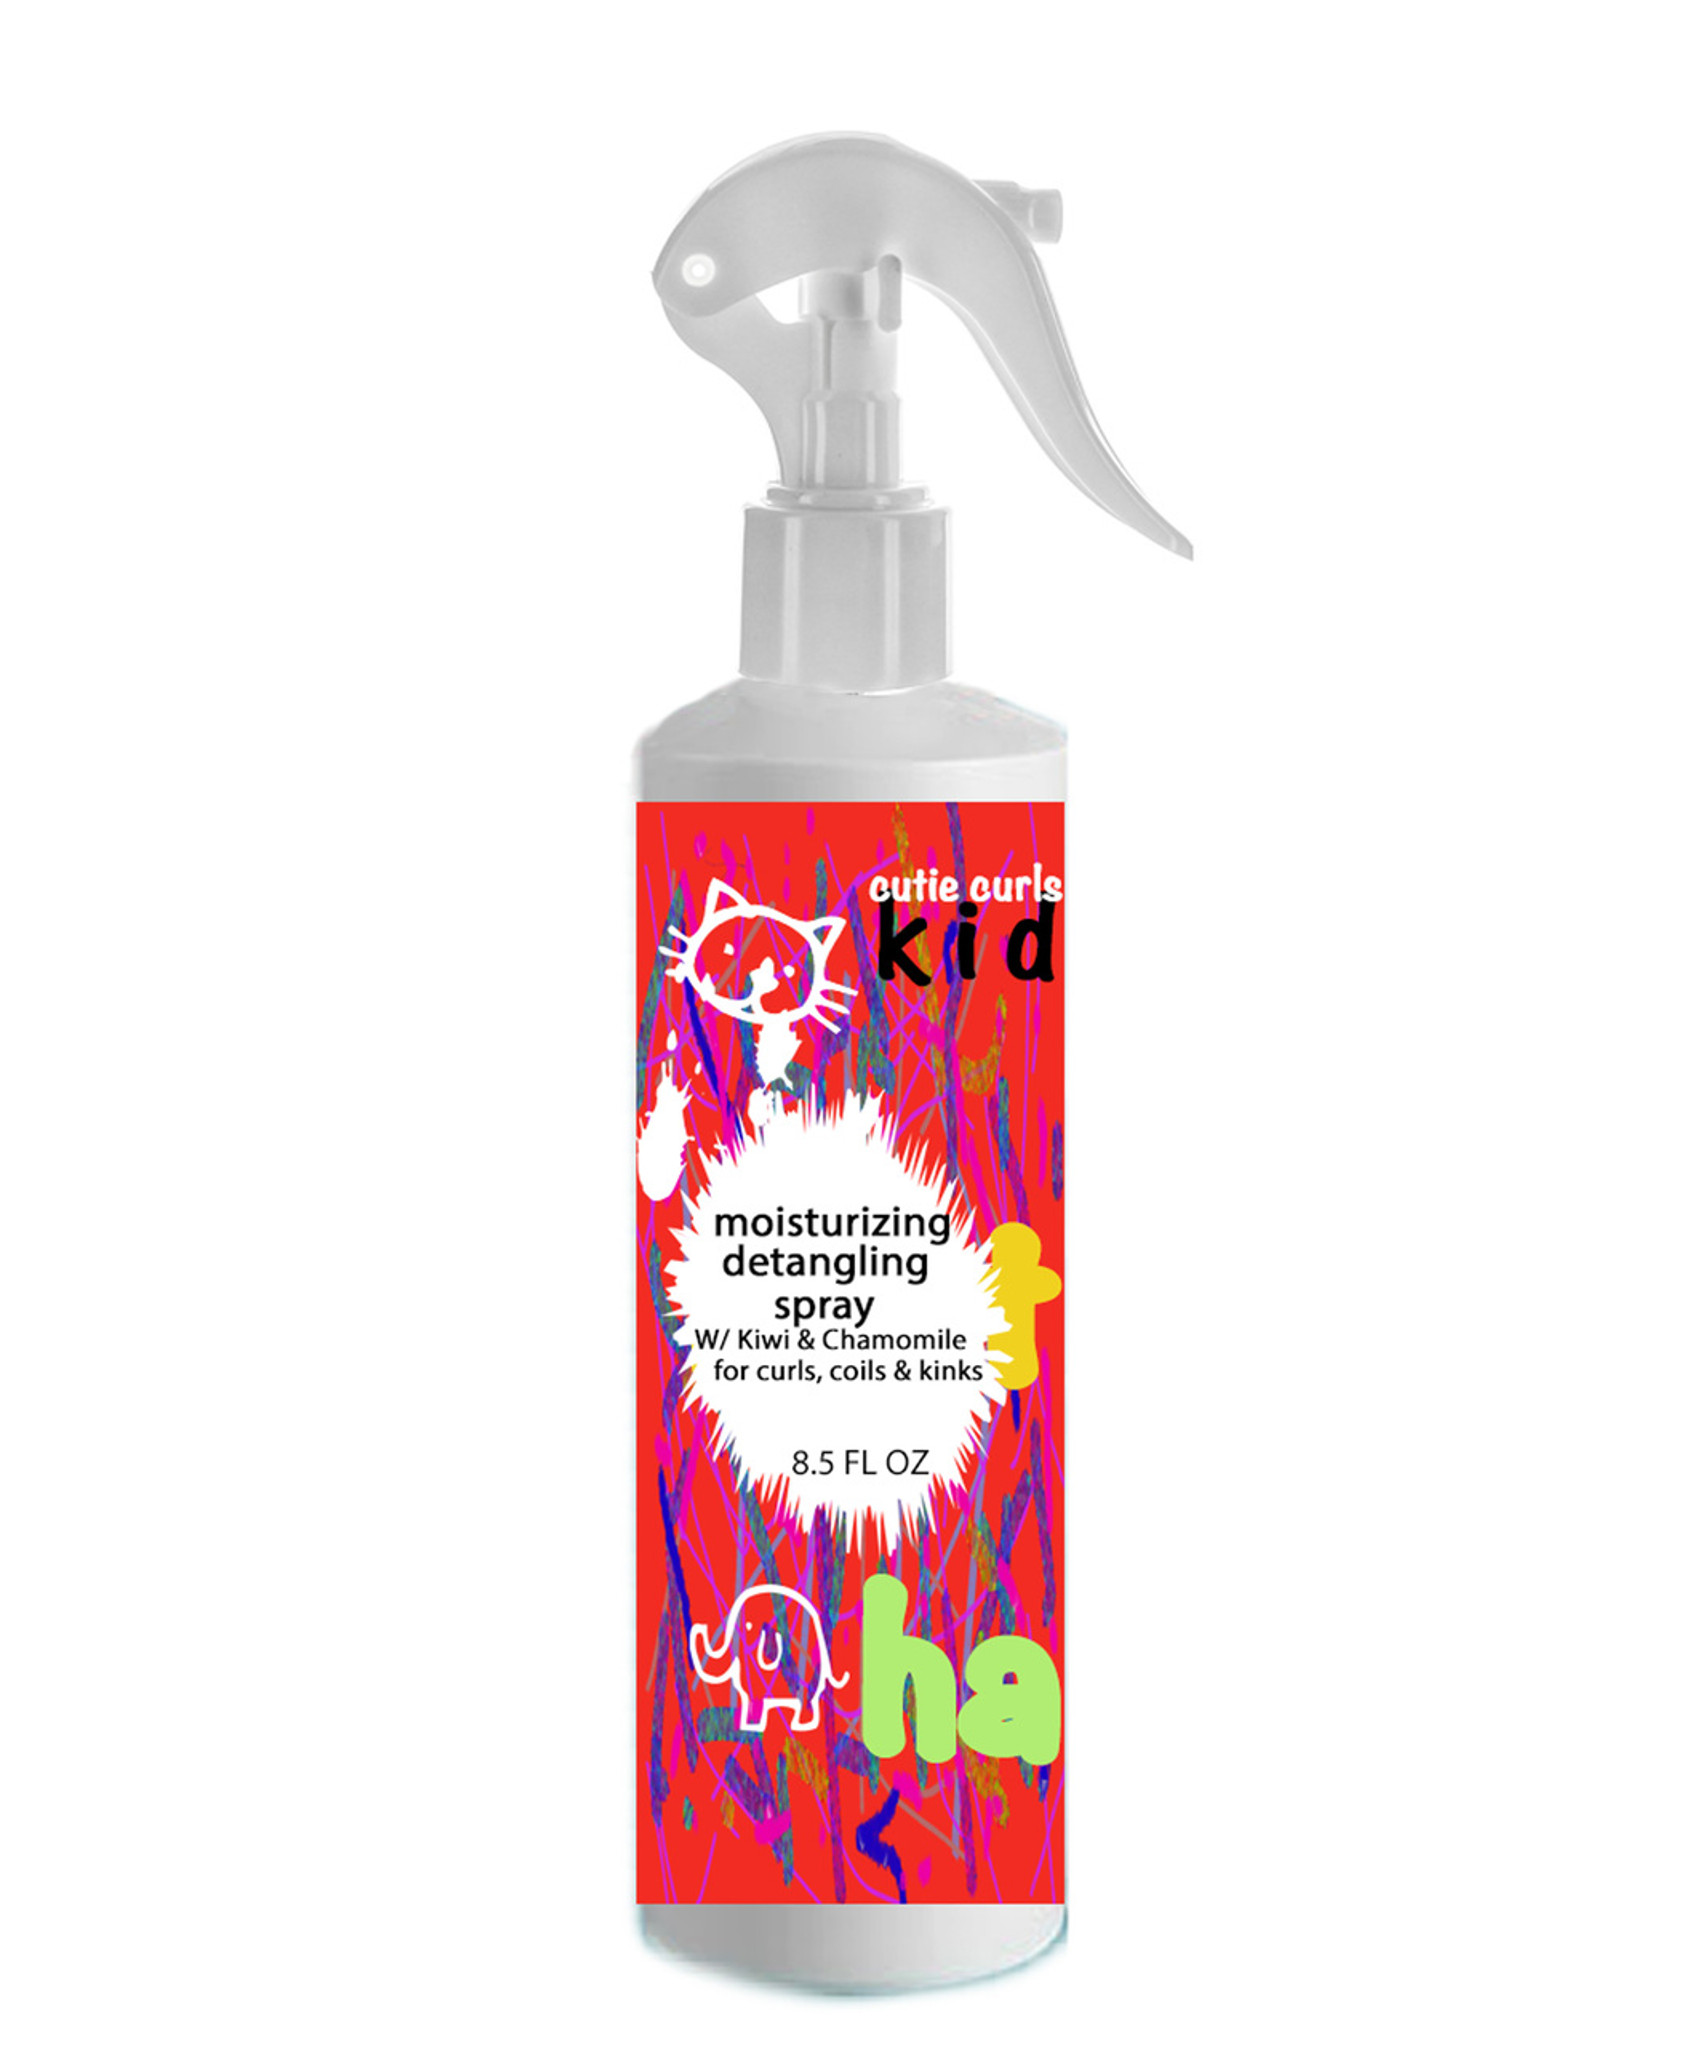 CUTIE CURLS MOISTURIZING DETANGLING SPRAY